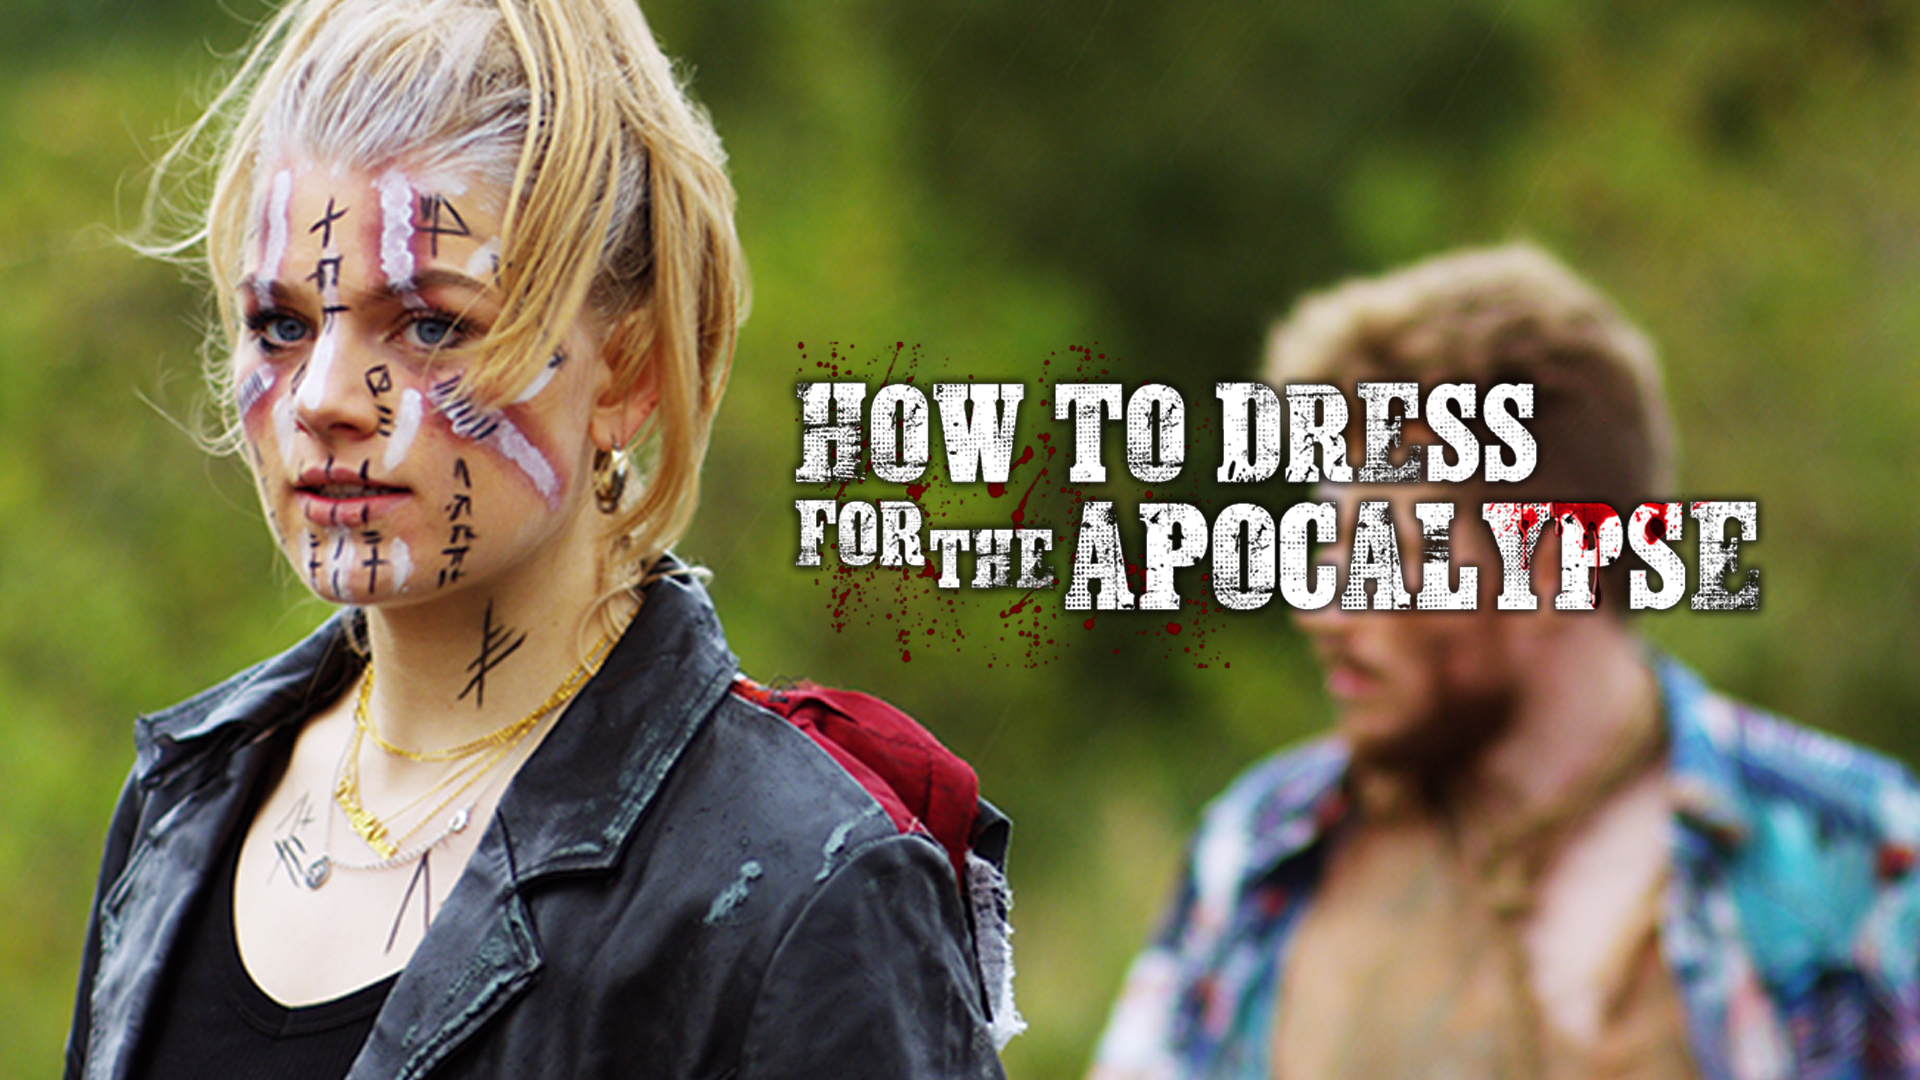 How To Dress For The Apocalypse